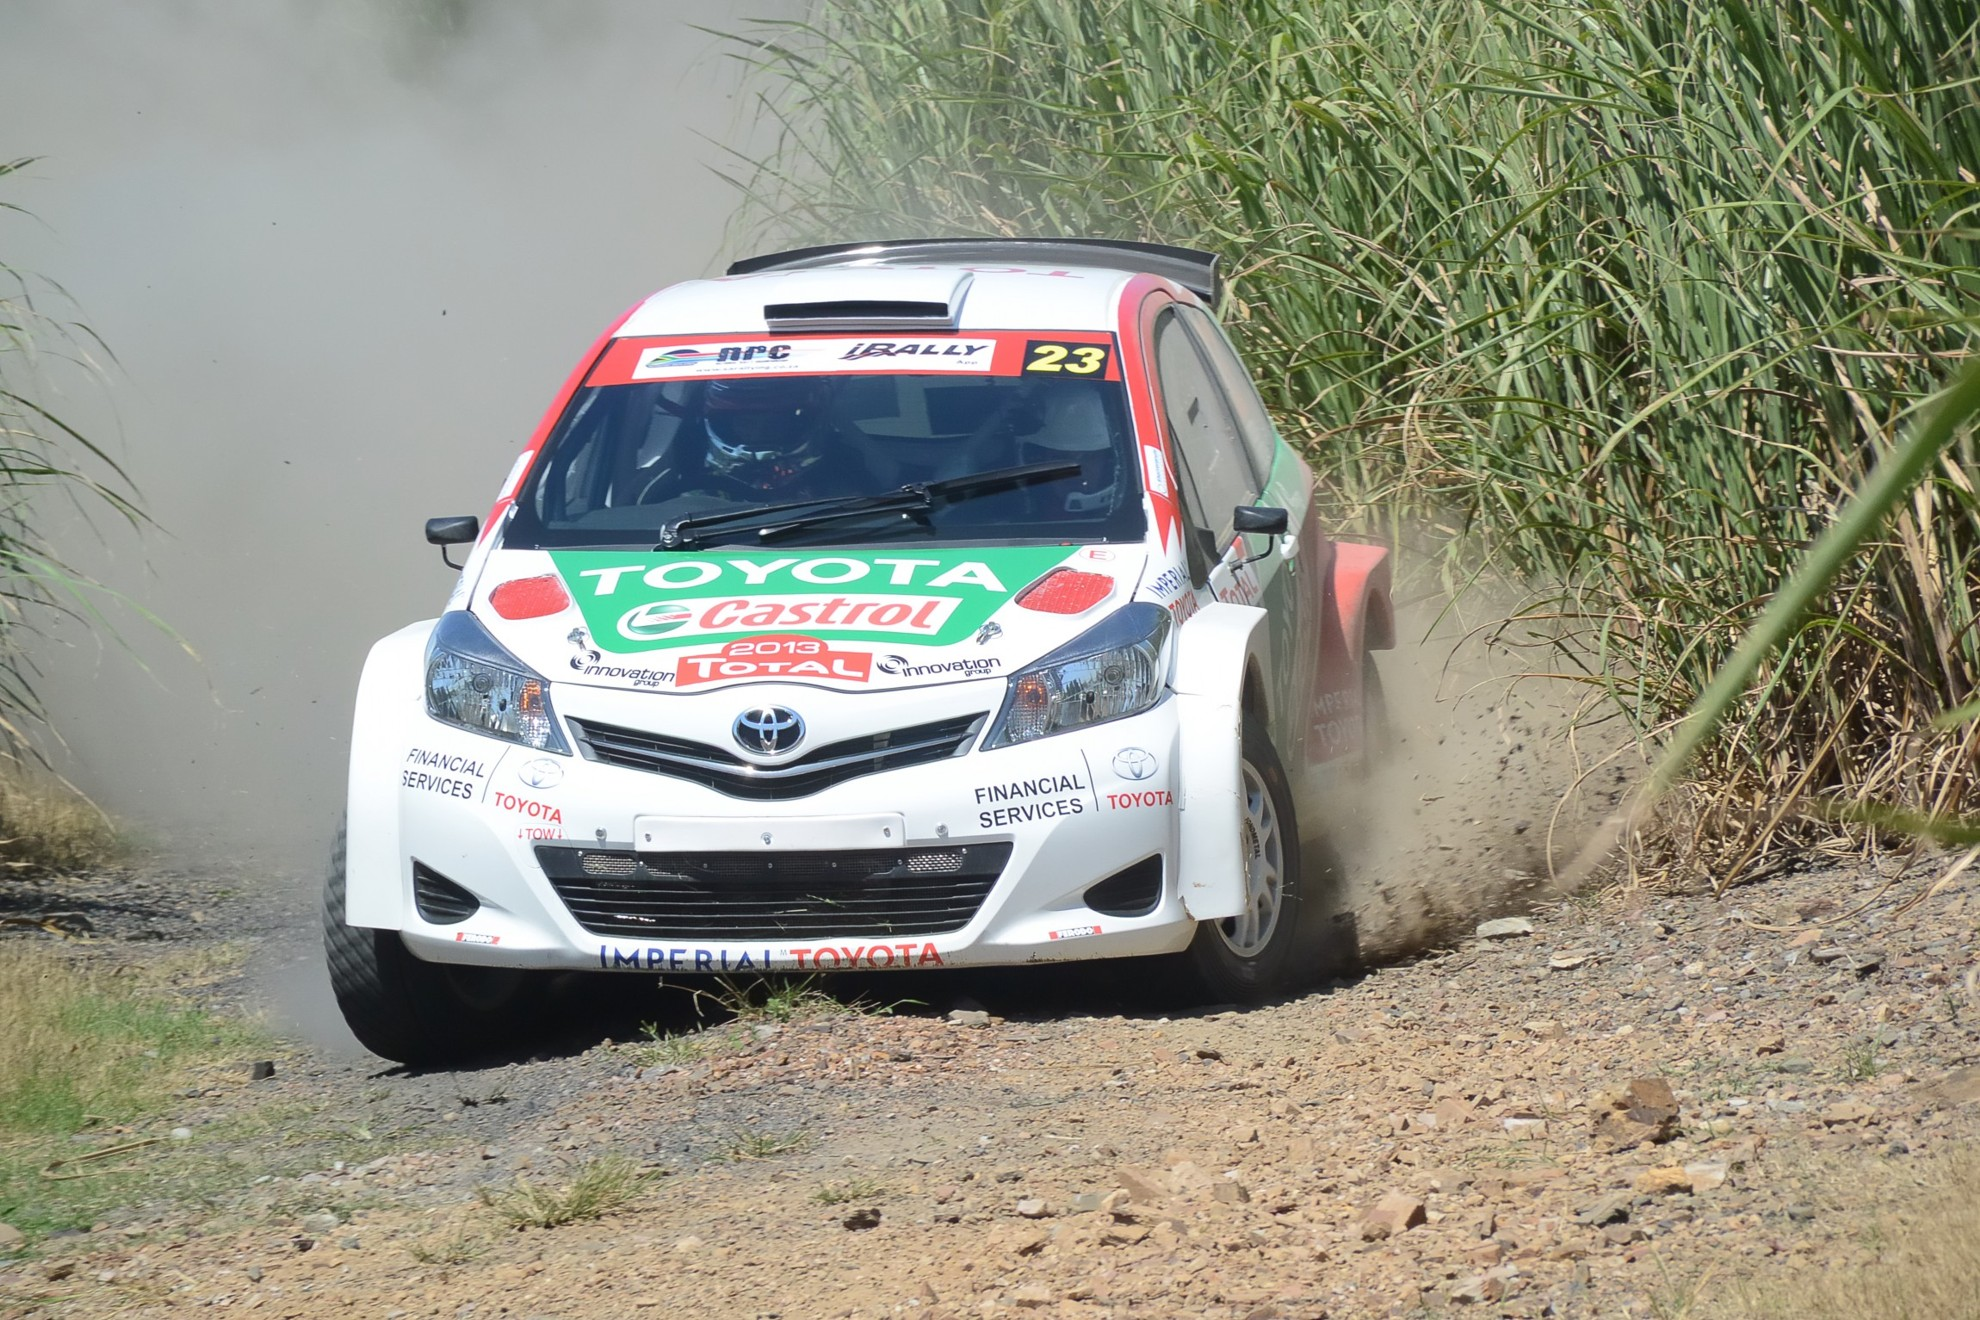 Toyota Yaris Rally